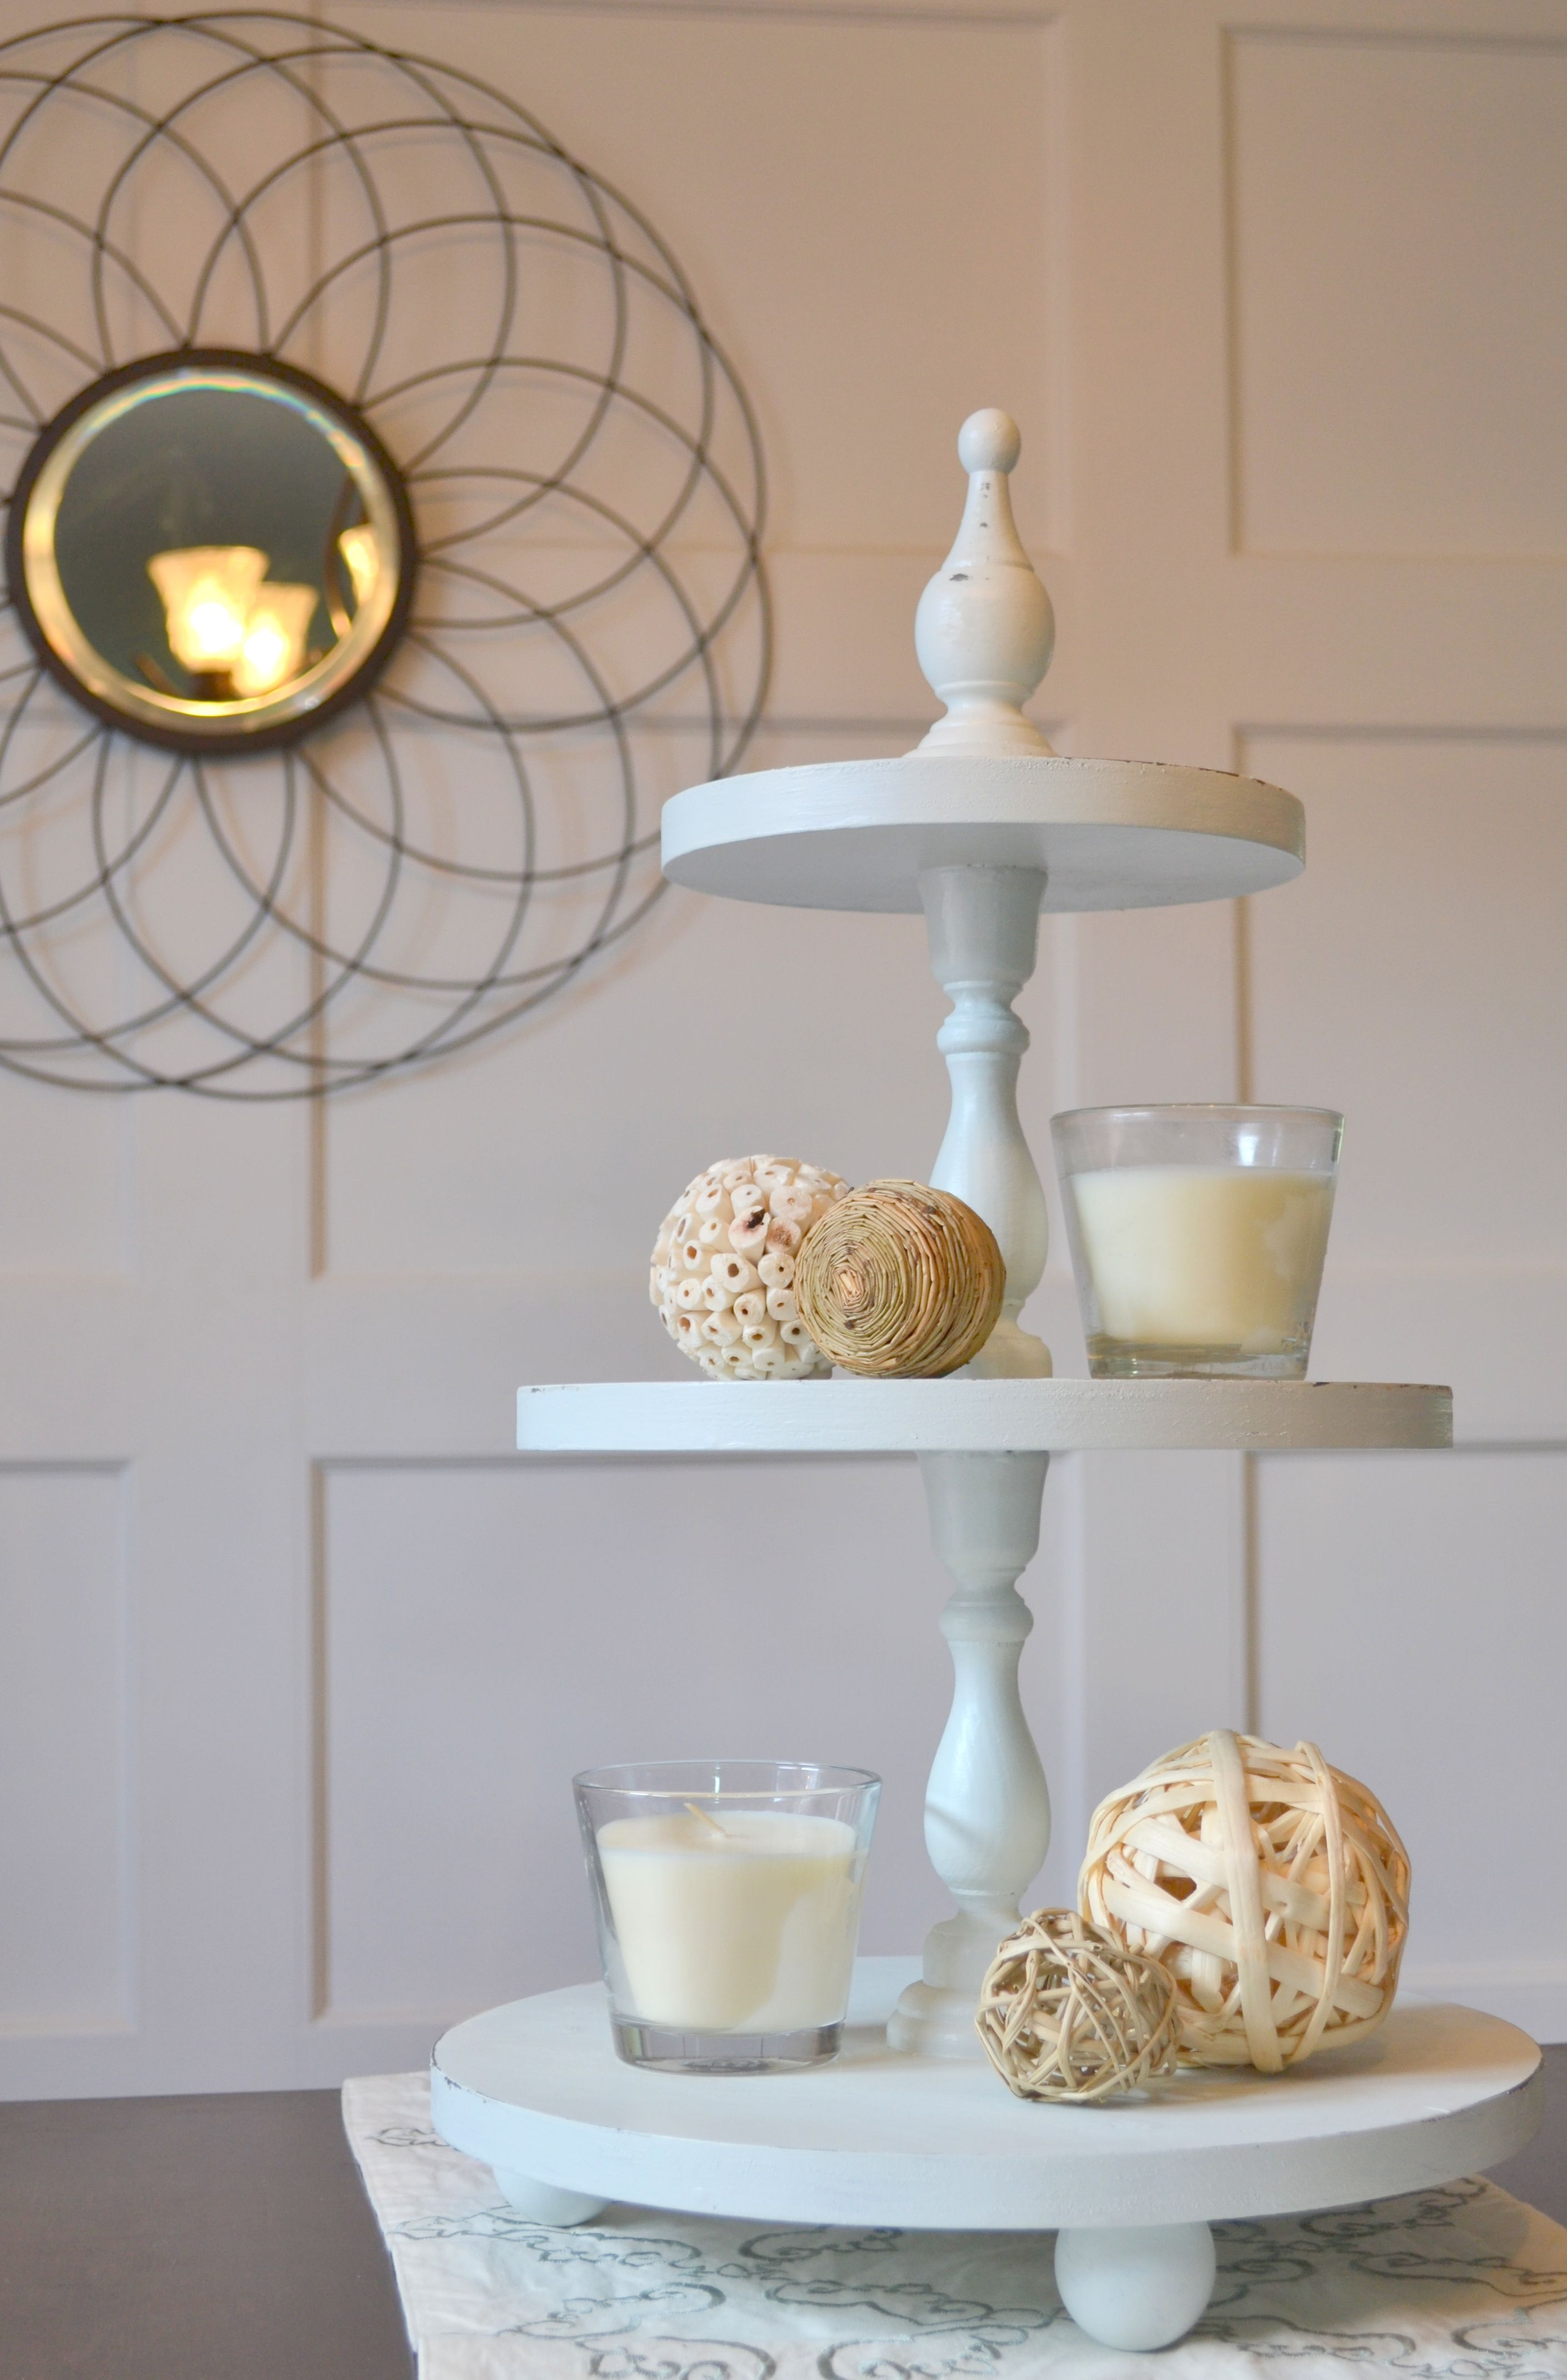 3 Tier Cake Stand Michaels Google Search Cake Stand